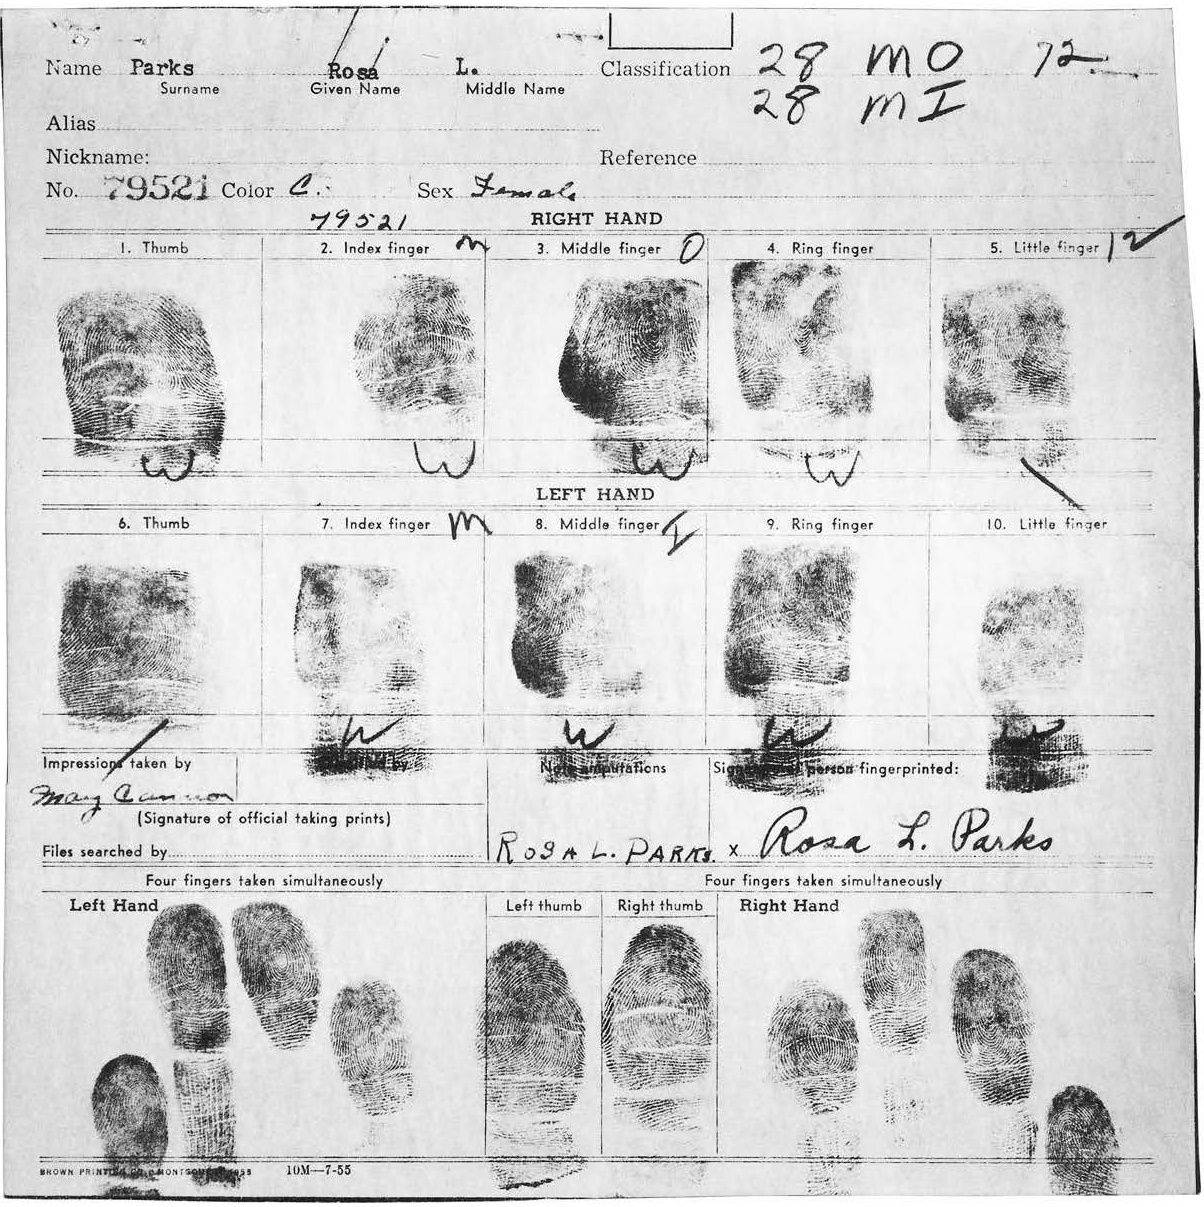 Rosa Parks s Montgomery arrest fingerprint card December 1 1955